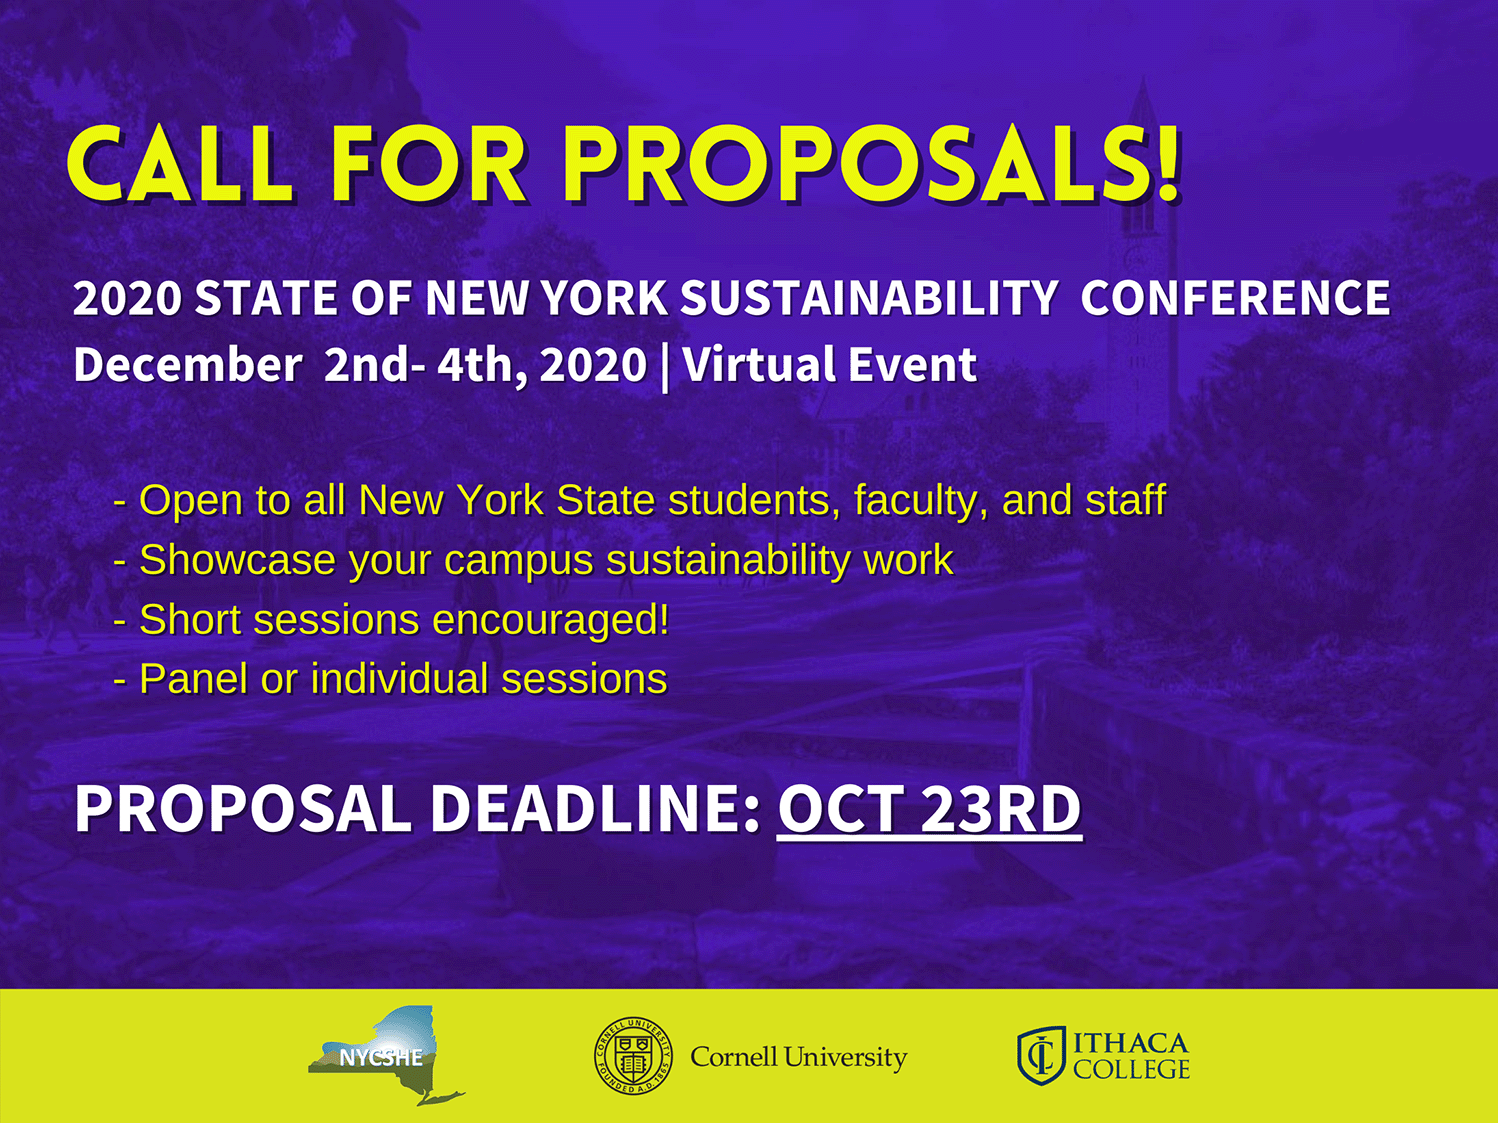 NYCHE call for proposals flyer